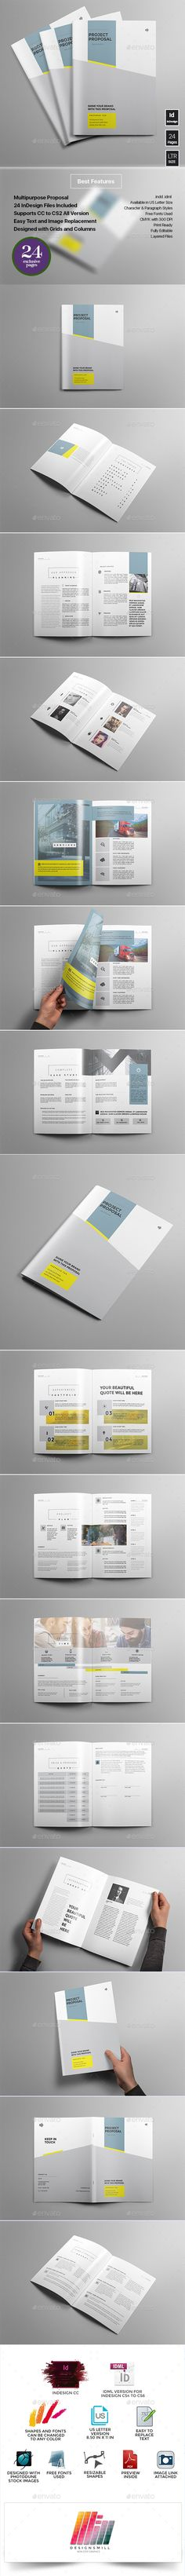 Proposal Proposal templates, Proposals and Project proposal - event proposal templates